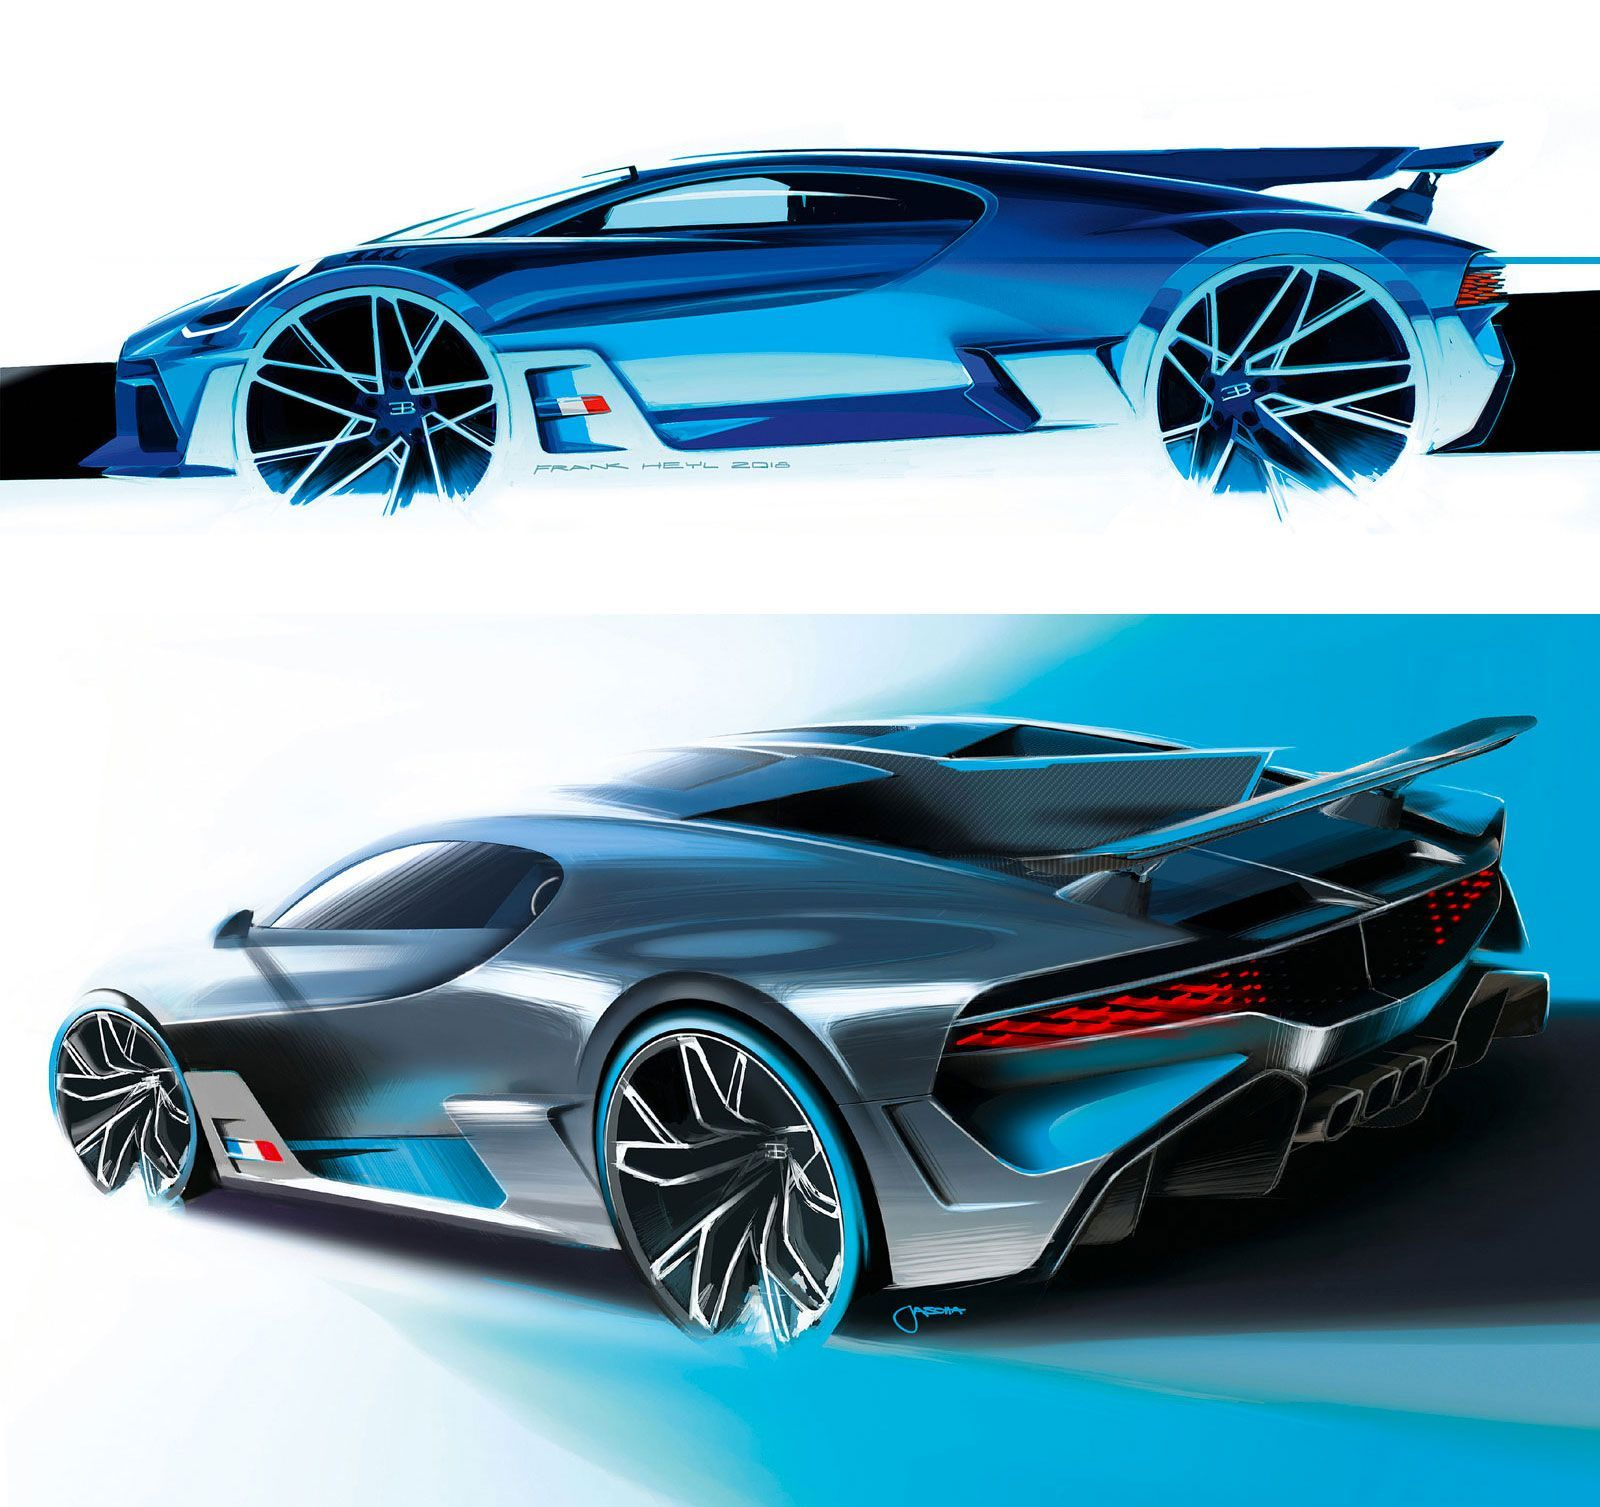 Bugatti Divo Official Design Sketches By Head Of Exterior Design Frank Heyl And Exterior Designer Jascha Strau Concept Car Design Car Design Automotive Design